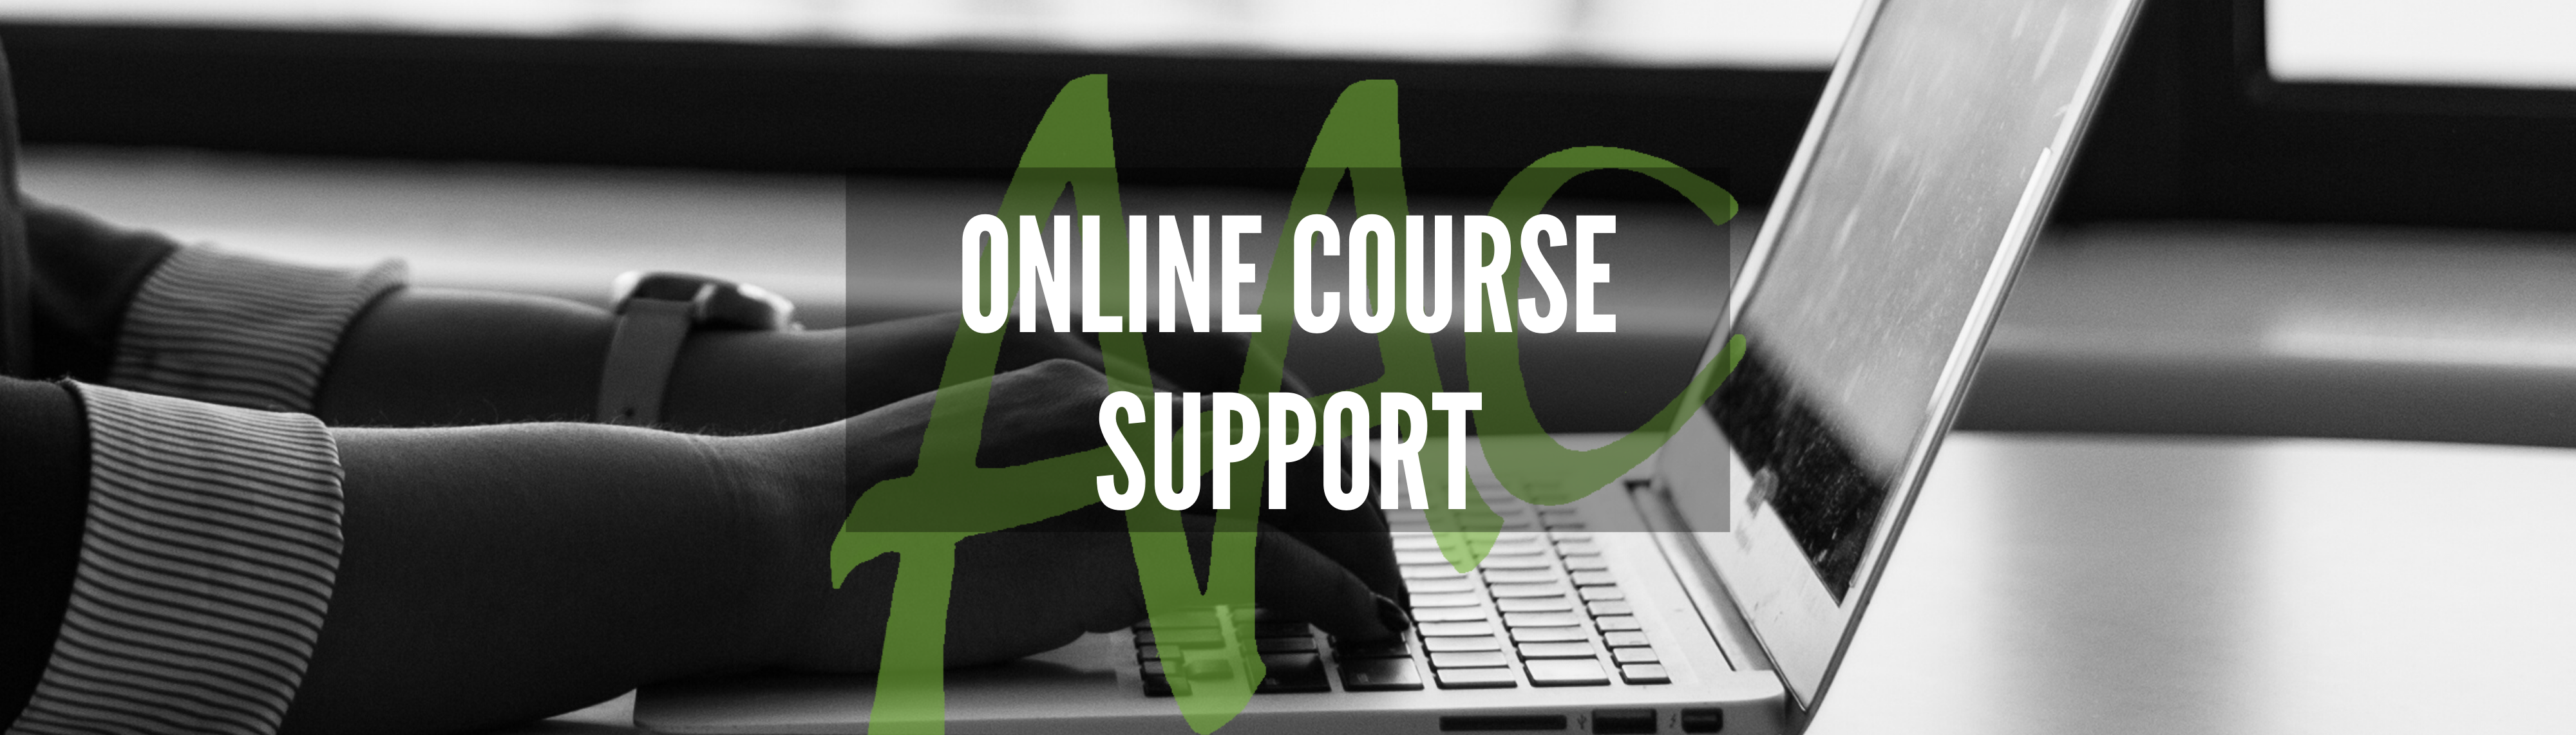 Online course support